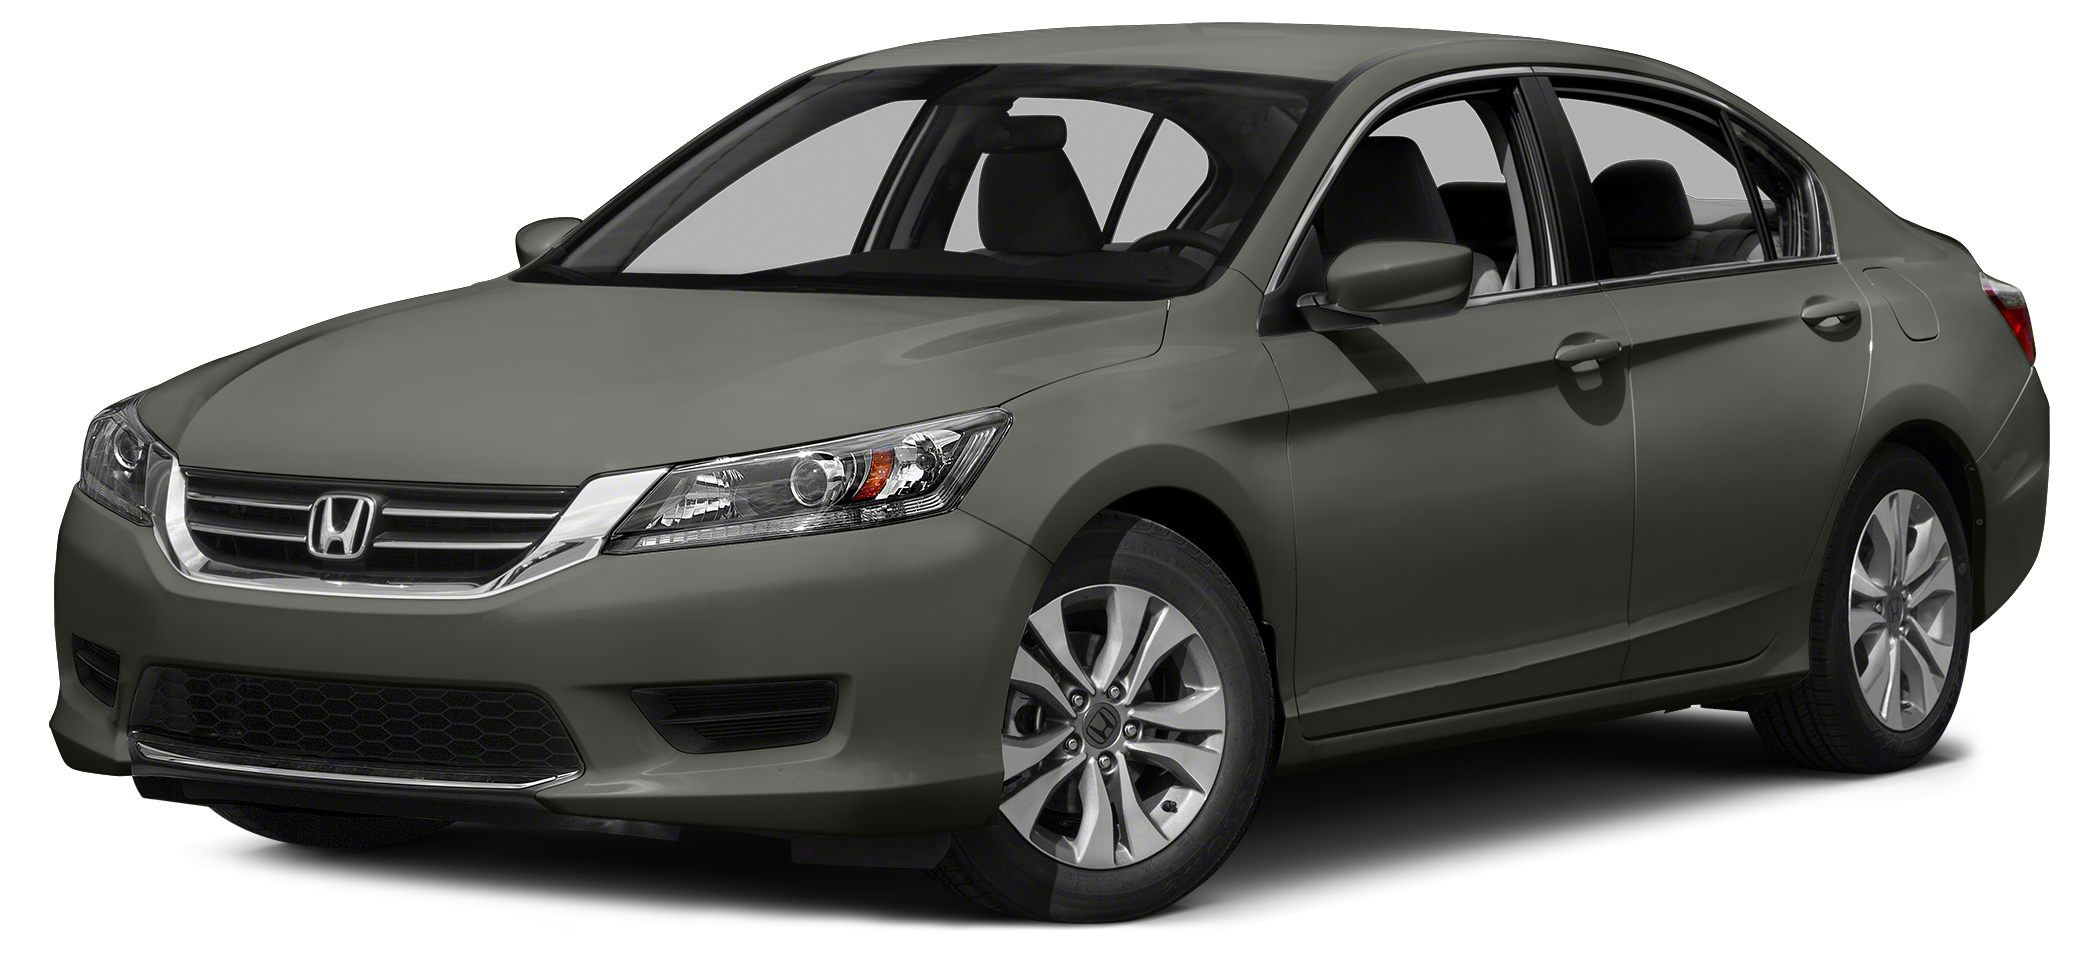 2014 Honda Accord LX Recent Arrival LOW INTEREST FINANCING AVAILABLE Cloth 24L I4 DOHC i-VTEC